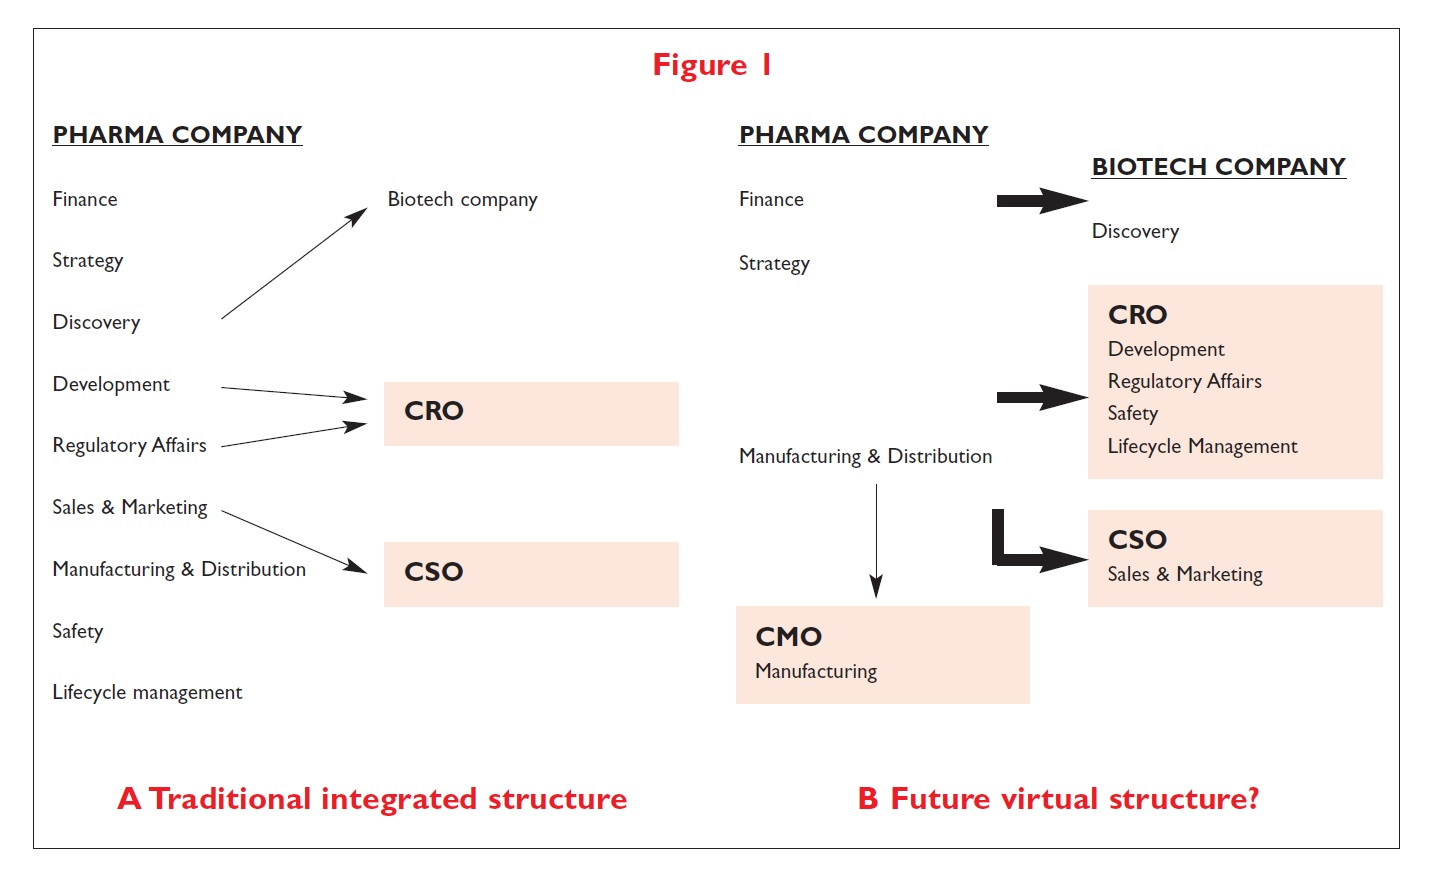 Figure 1 A traditional integrated structure and future virtual structure